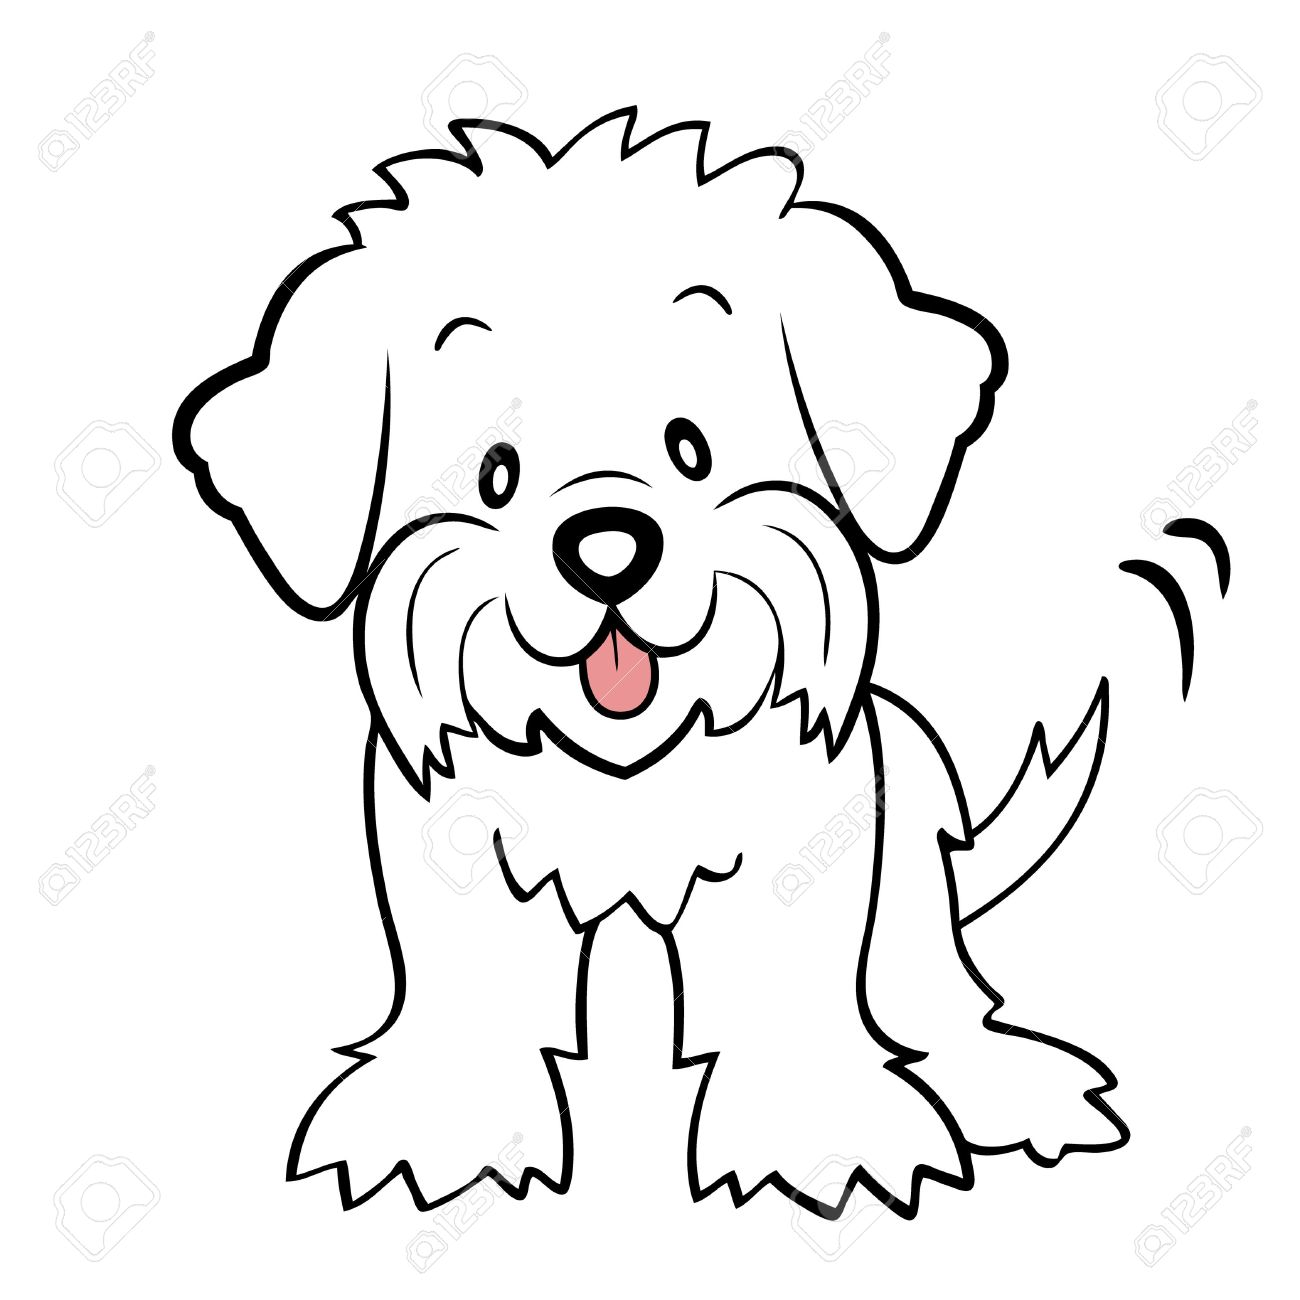 hight resolution of 1300x1300 puppy cut maltese isolated royalty free cliparts vectors